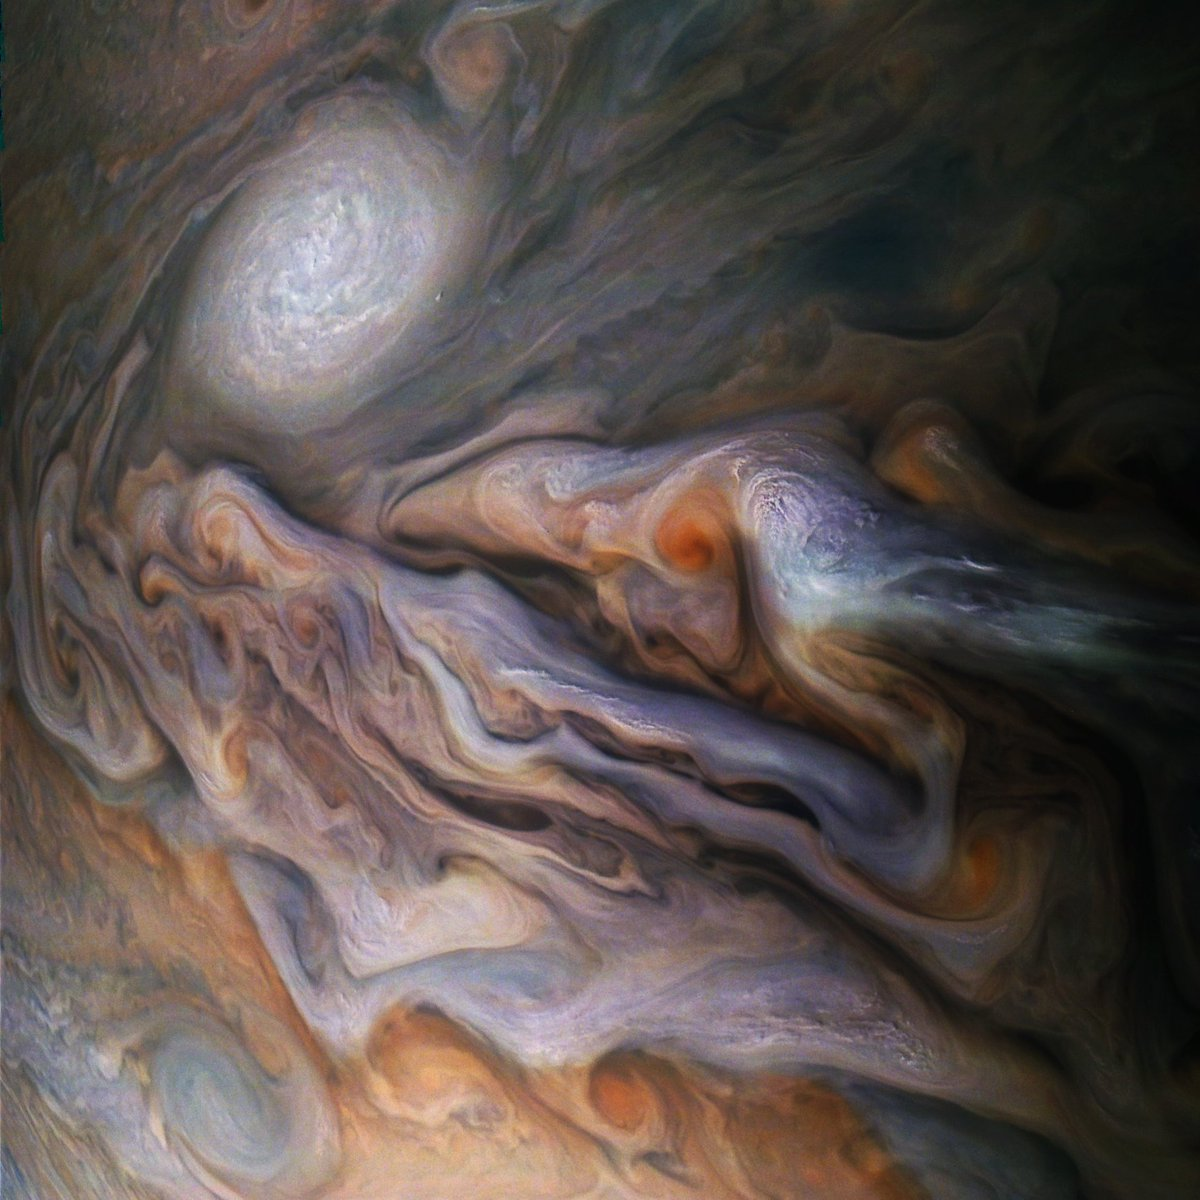 A Dragon's Eye? What do you see within the swirling clouds of Jupiter? https://t.co/TjIOUFJ2CC 📸: @NASAJuno